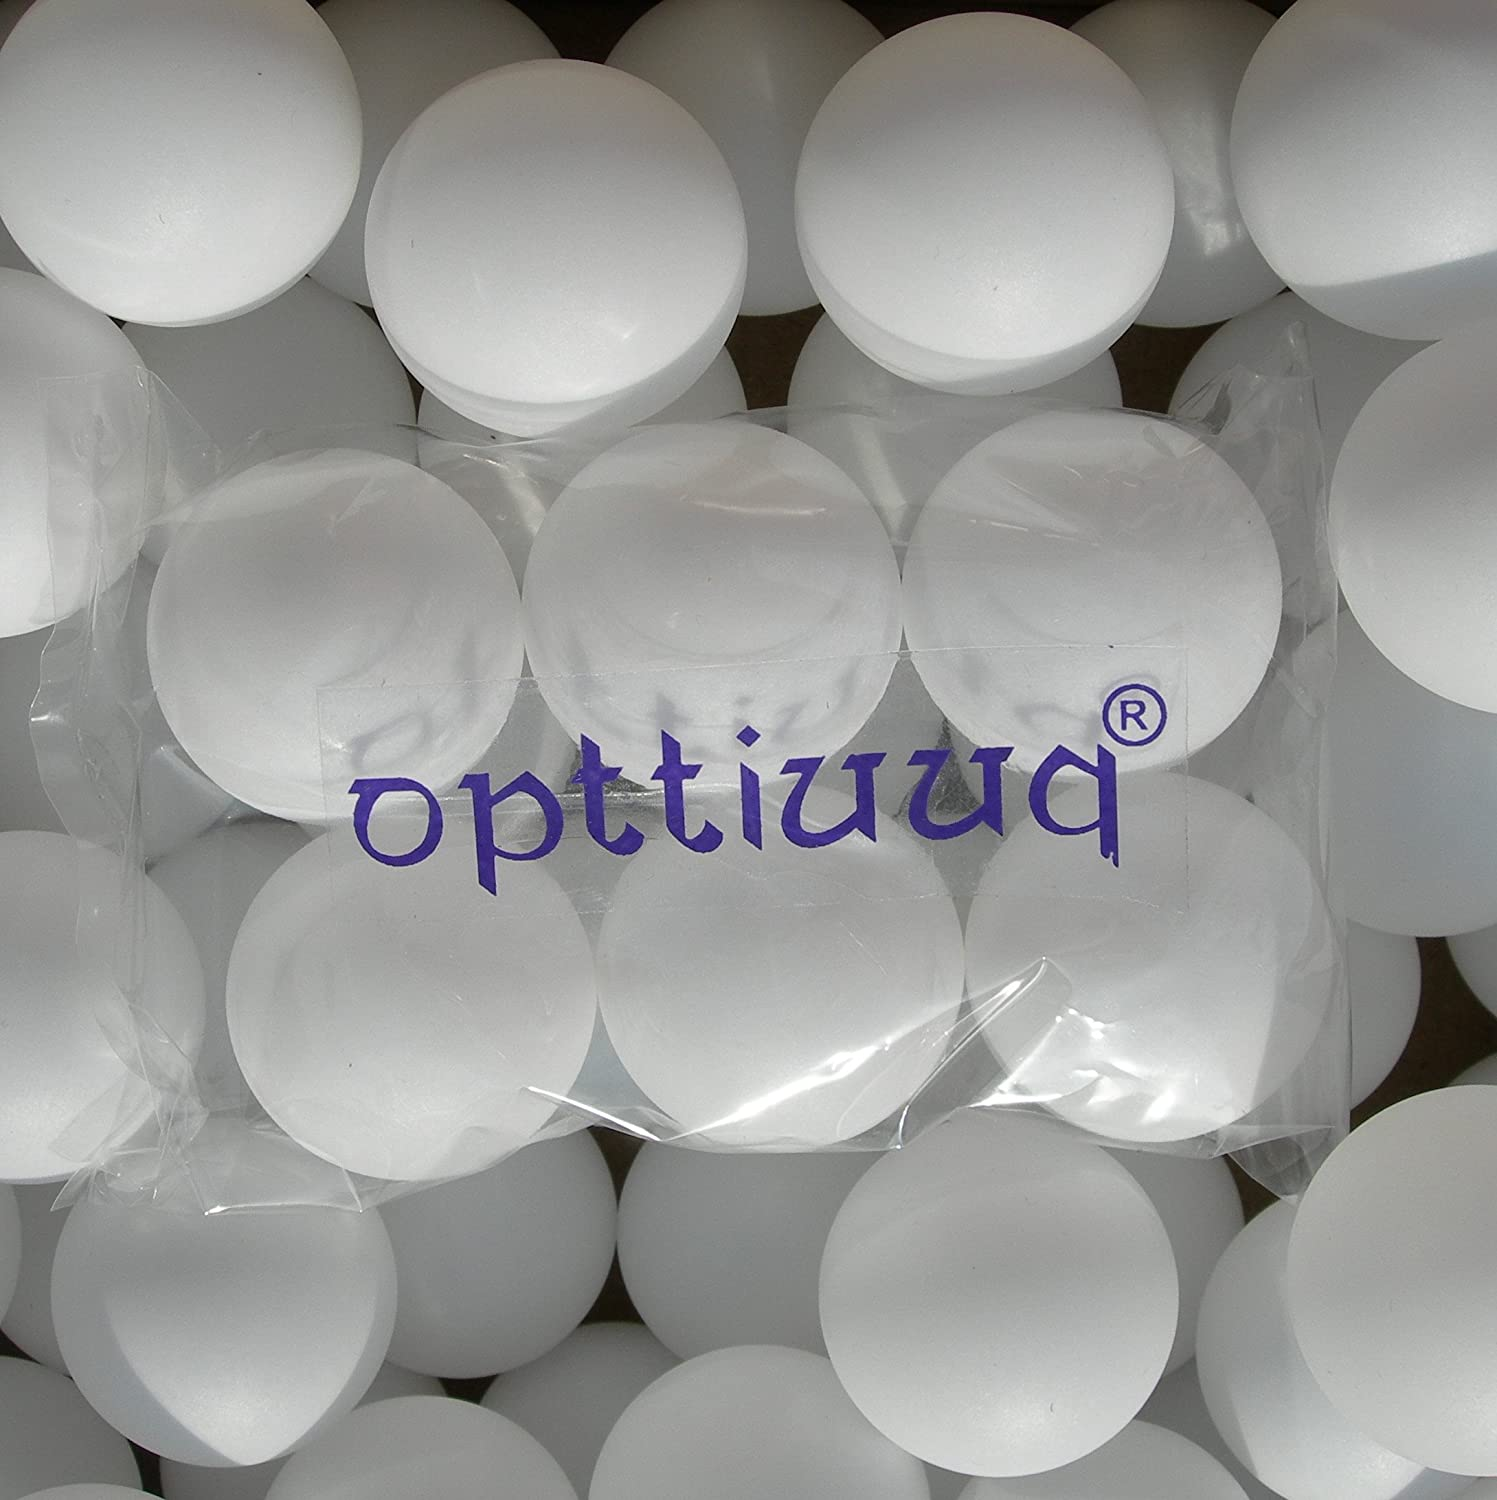 25 x Opttiuuq Plain White (logo free) Table Tennis Balls. 40mm. Packed In Re-cycled boxes.